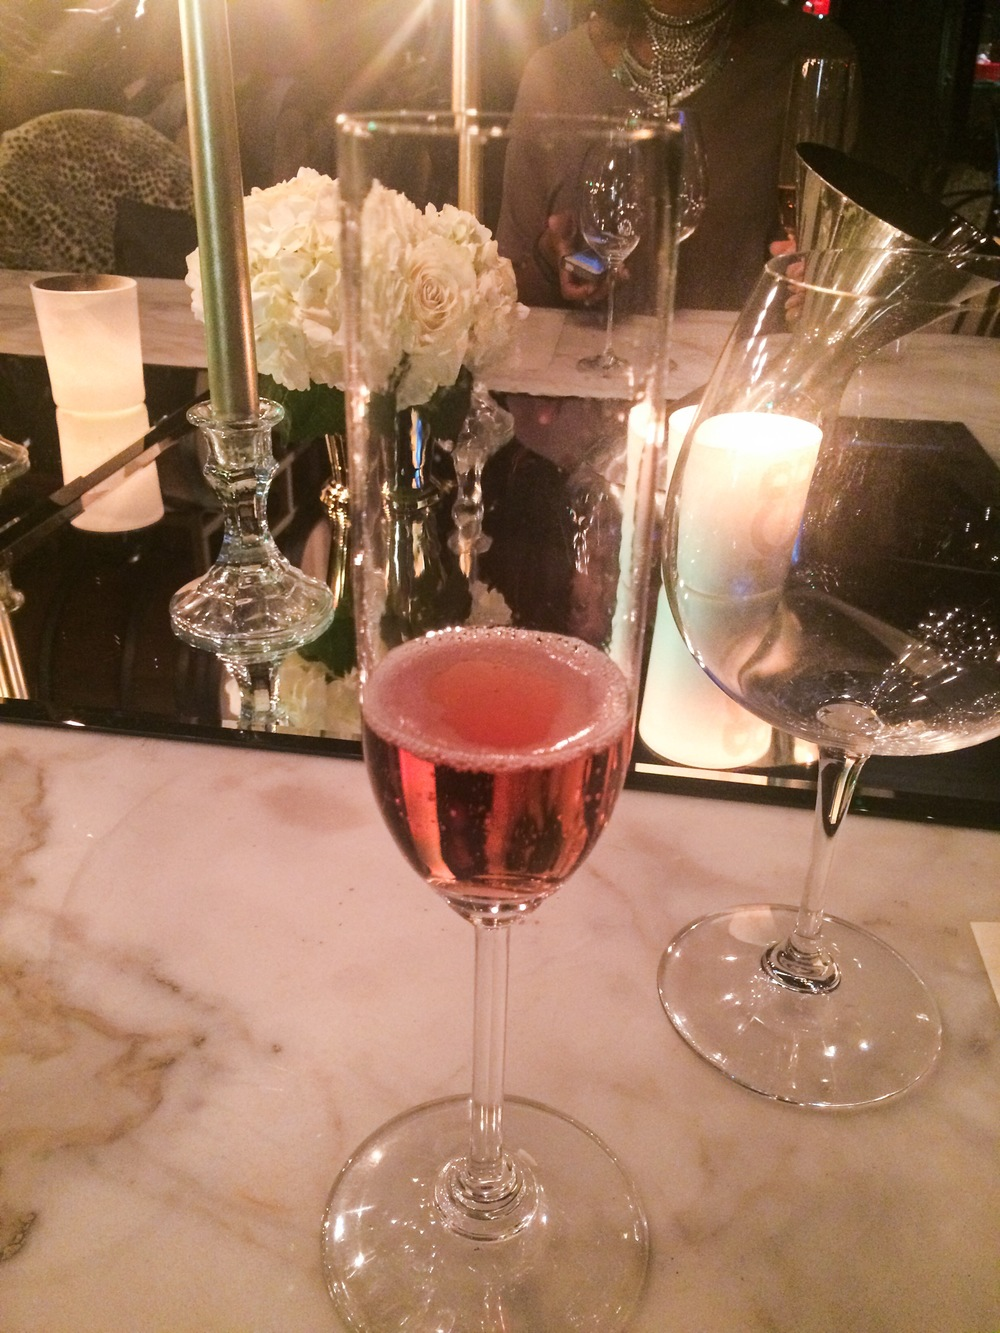 It is all about the Rosé